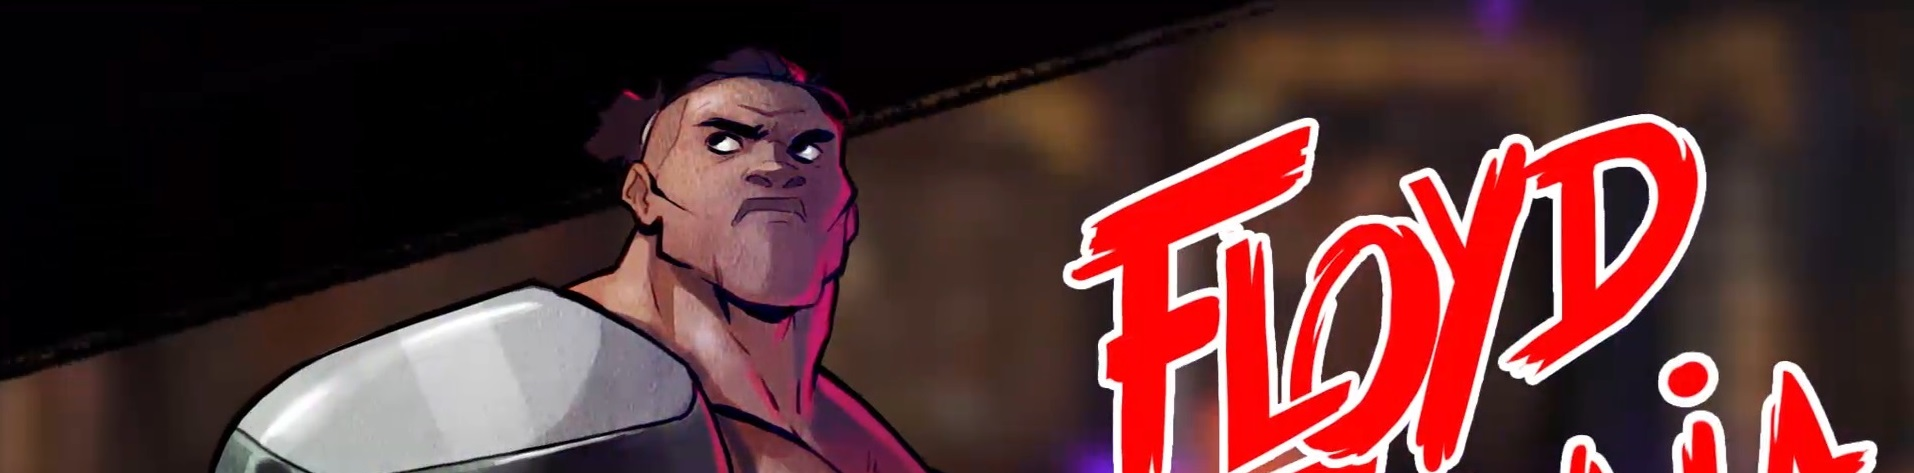 Meet Floyd Iraia, final Streets of Rage 4 playable character!